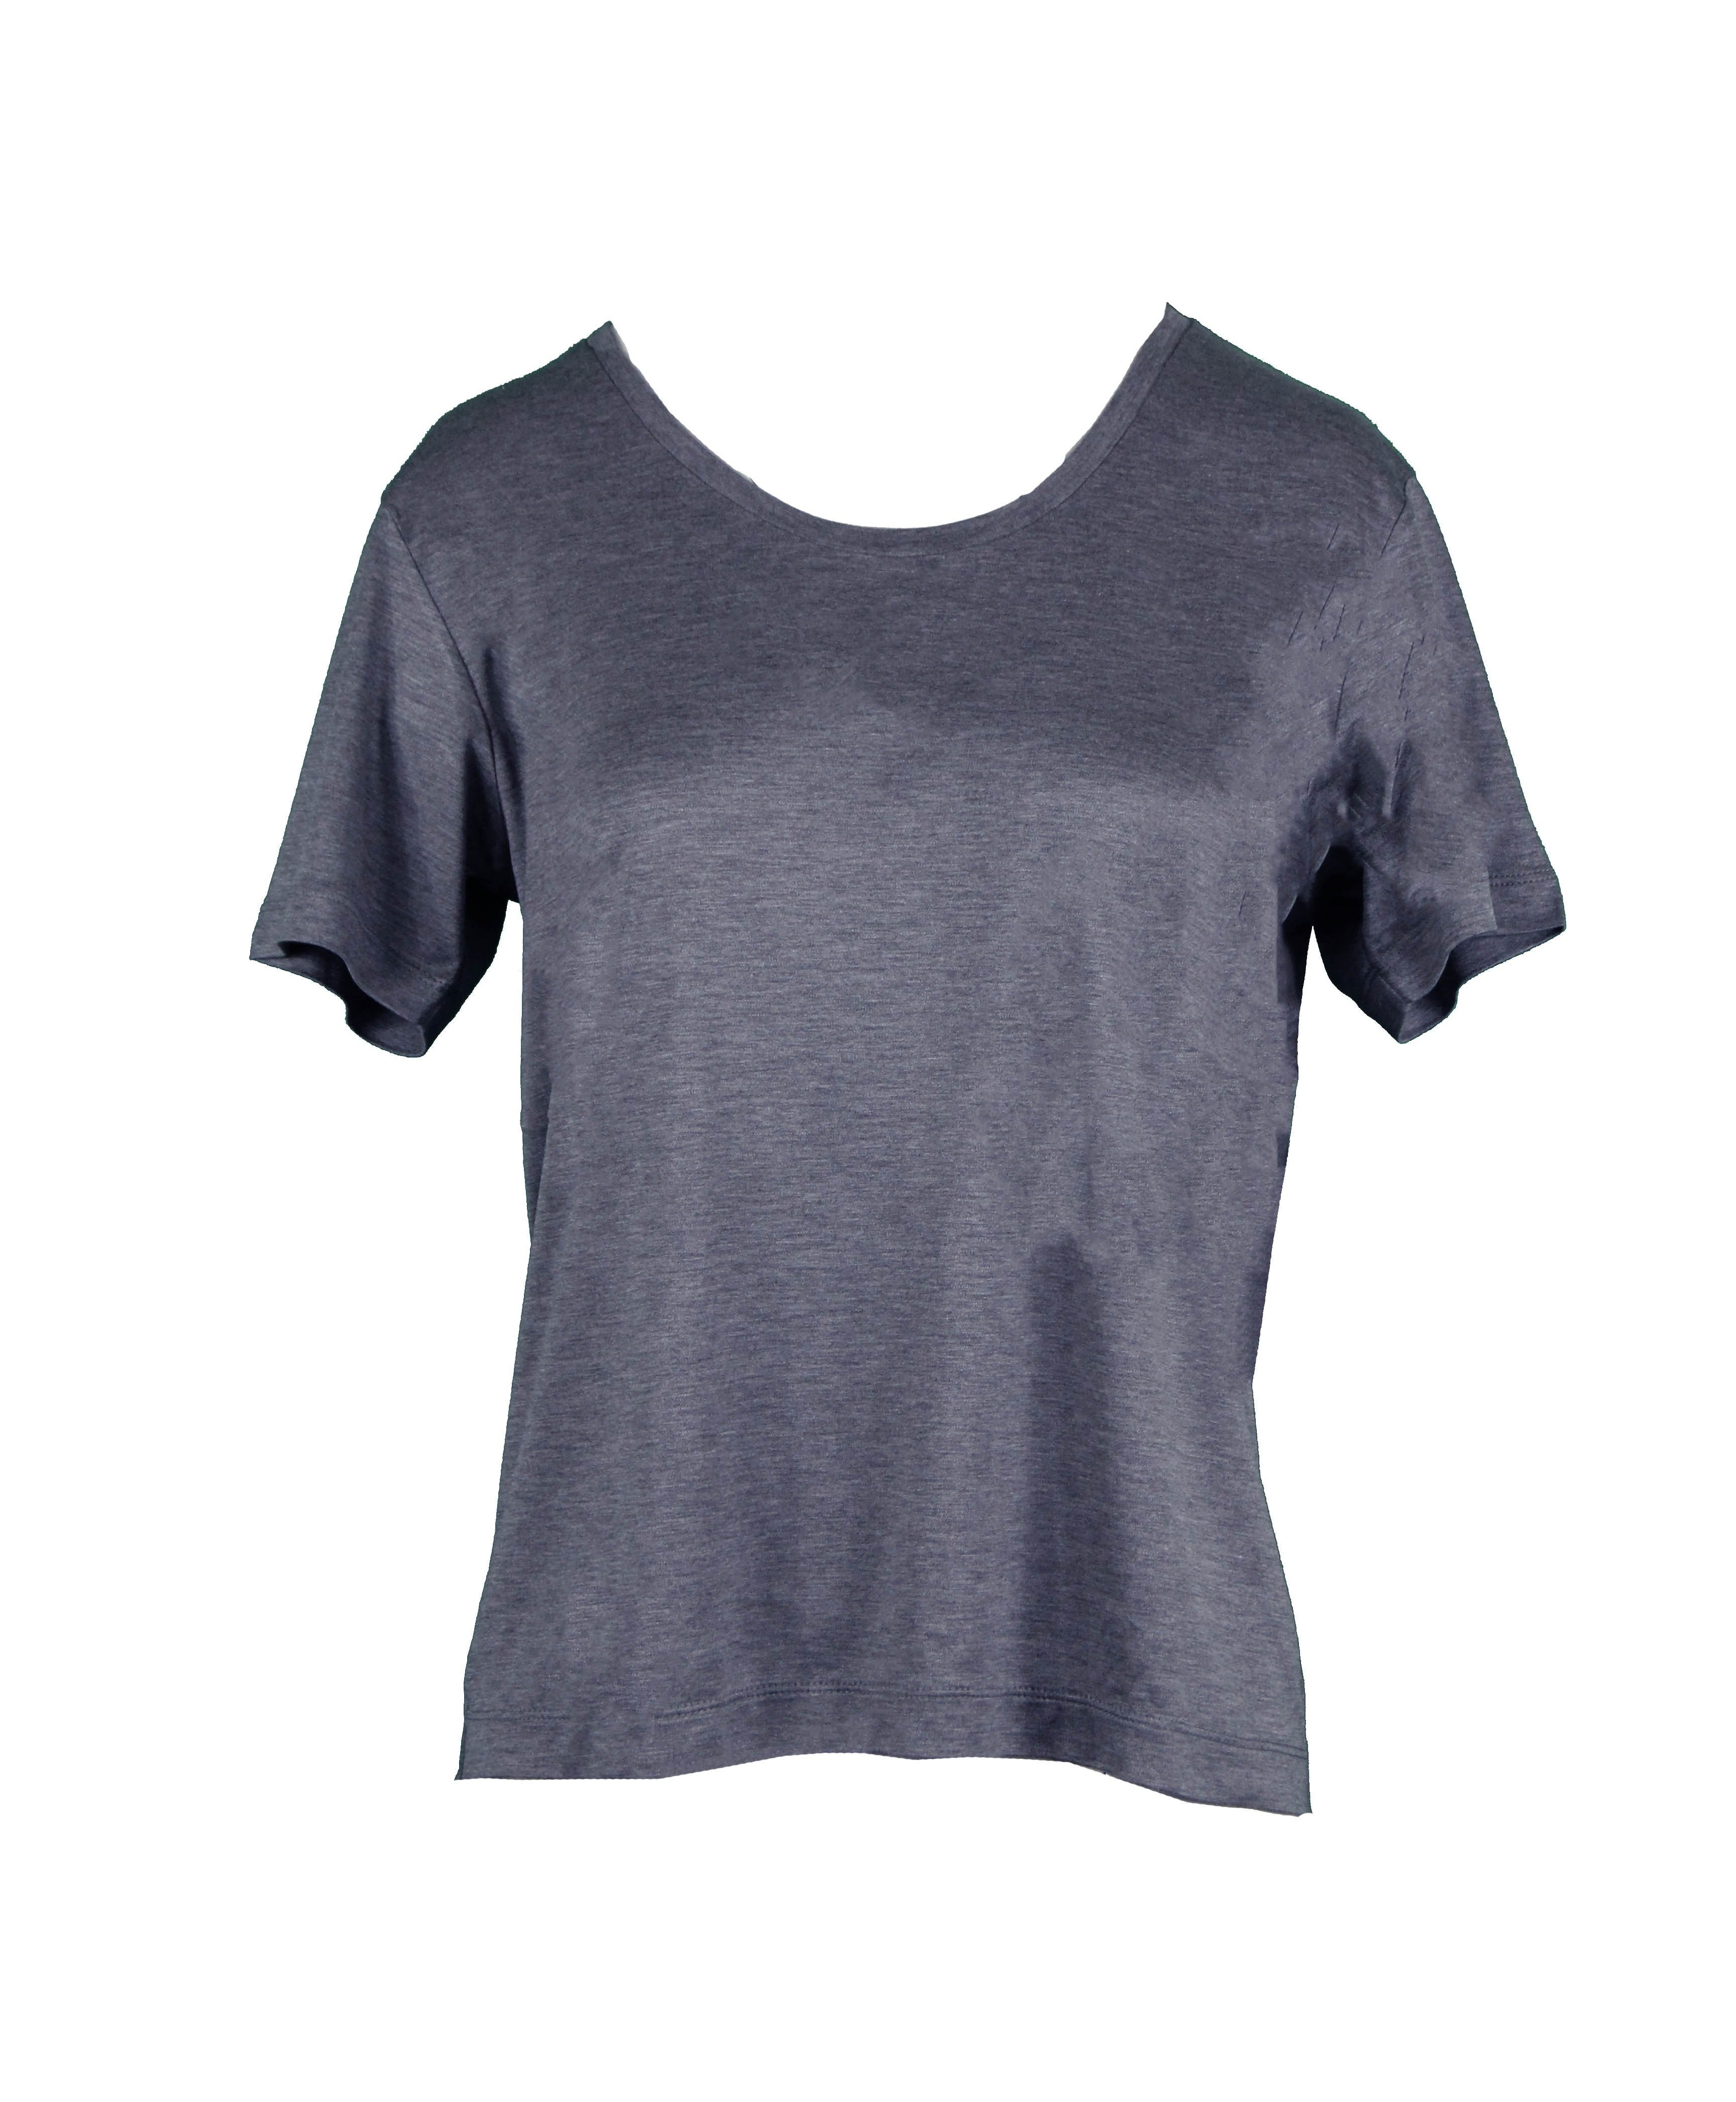 TL-9133 / Viscose Smooth Relax T Shirt